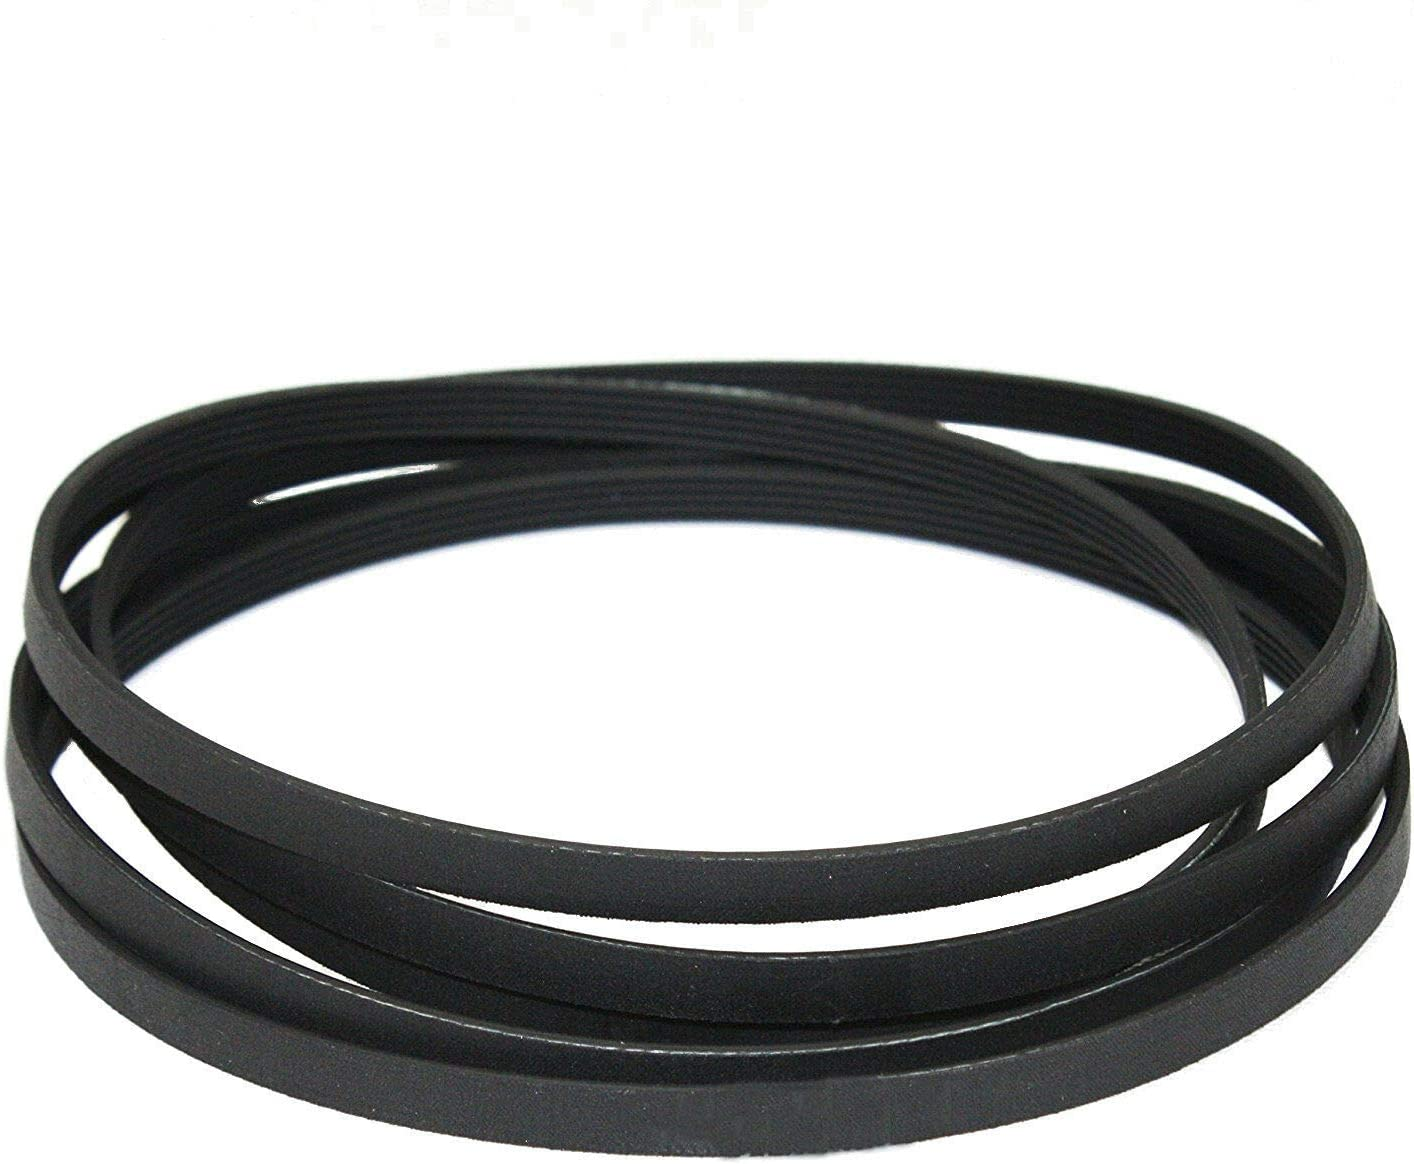 "Zh yan for Maytag 3-12959 312959 Y312959 100"" 5 Rib 4 Groove LB234 Dryer Drum Belt"